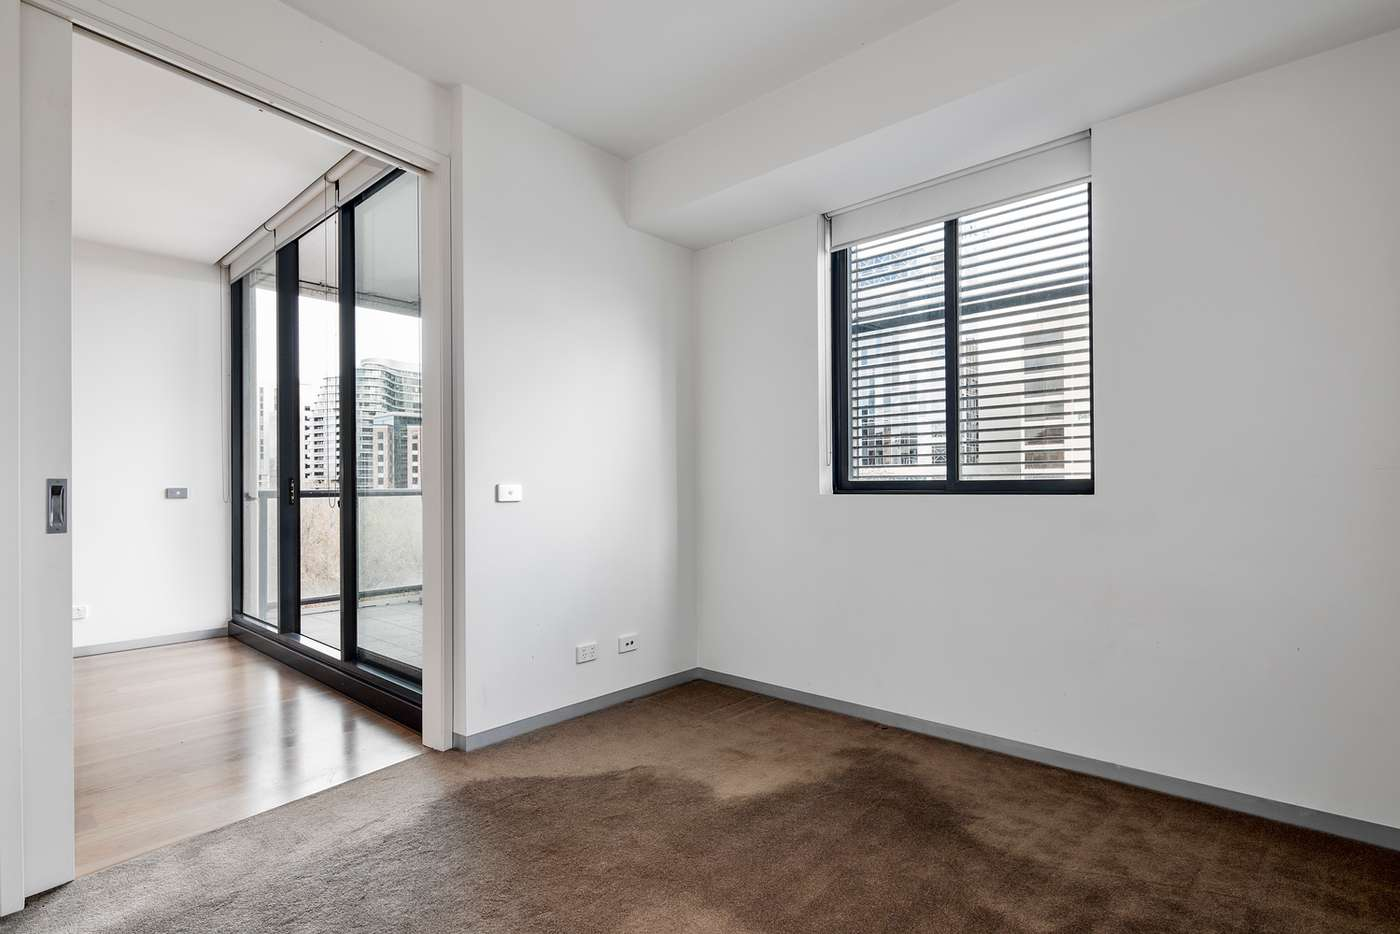 Seventh view of Homely apartment listing, 409/539 St Kilda Road, Melbourne VIC 3004